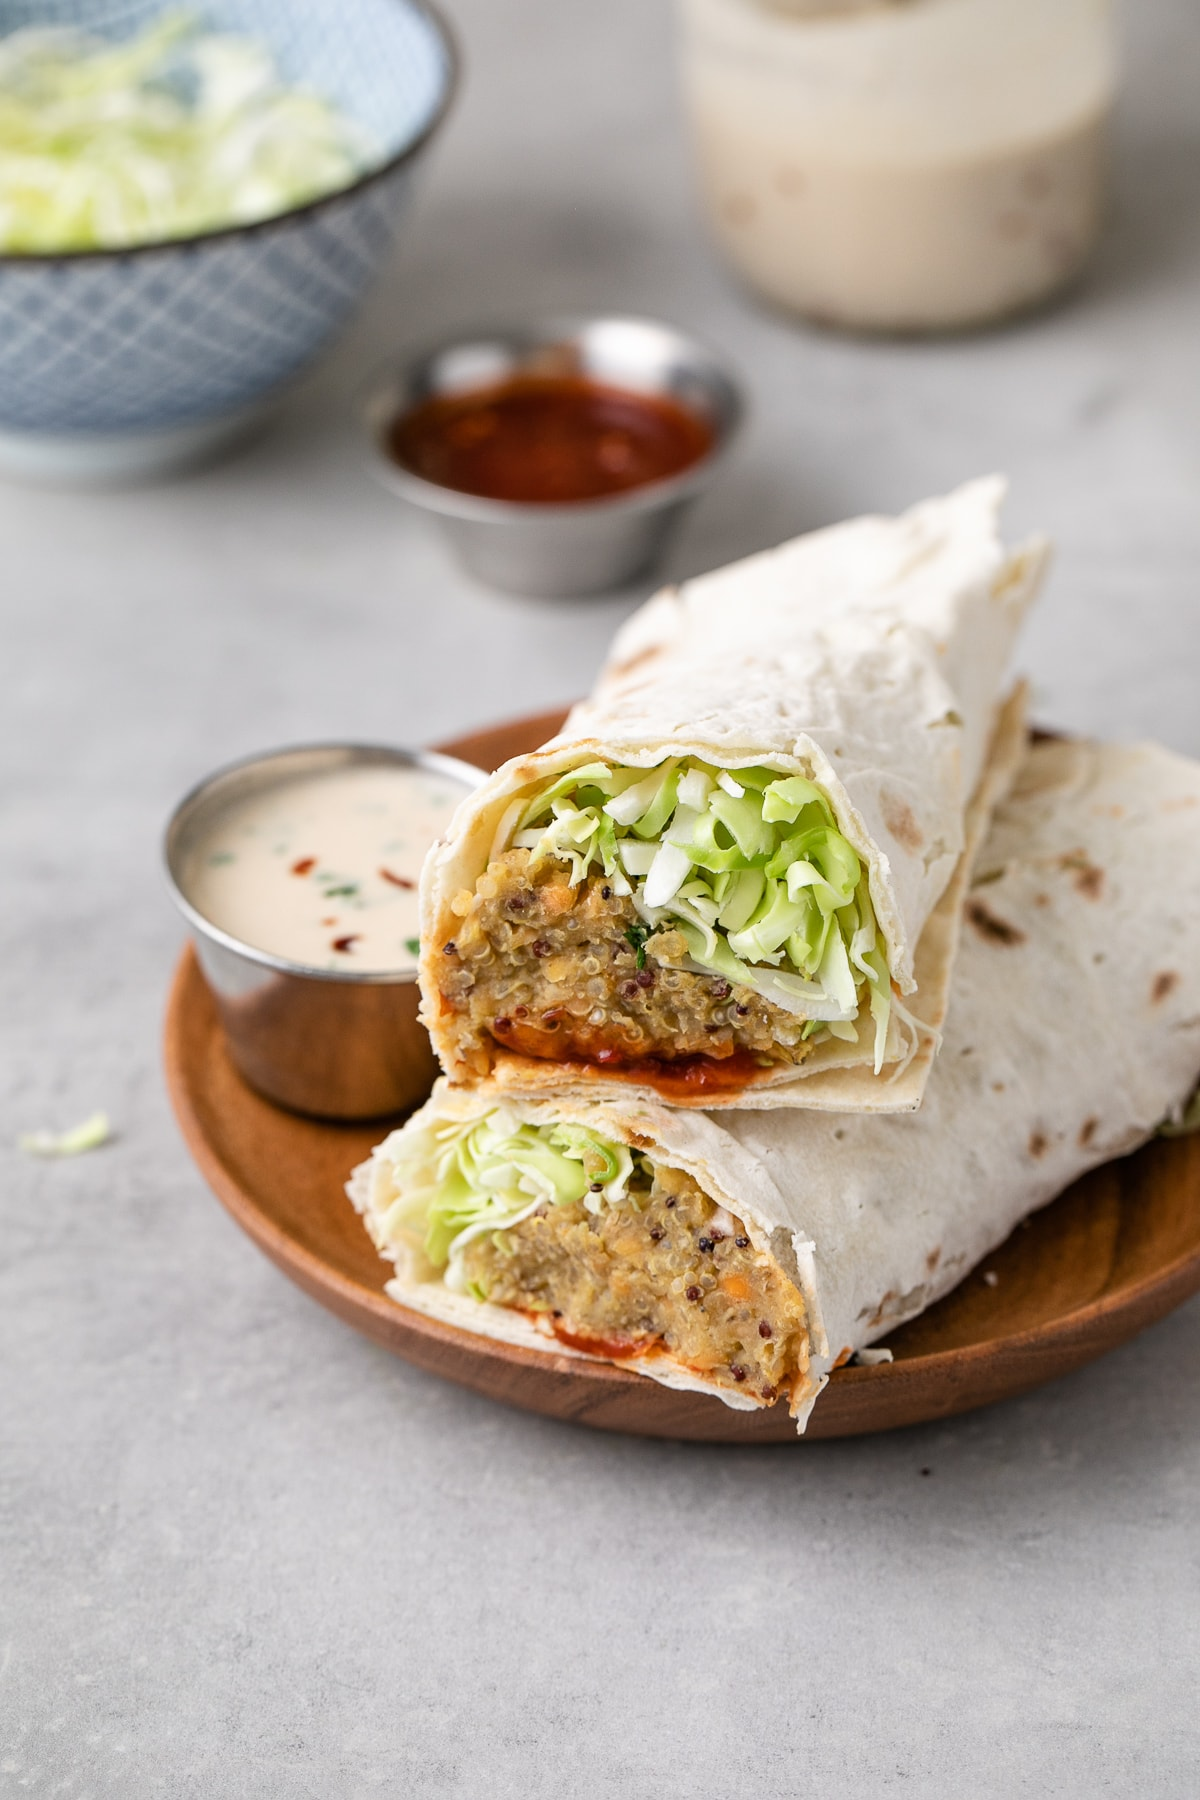 side angle view of spicy quinoa lentil wraps cut in half on a small wooden plate with items surrounding.